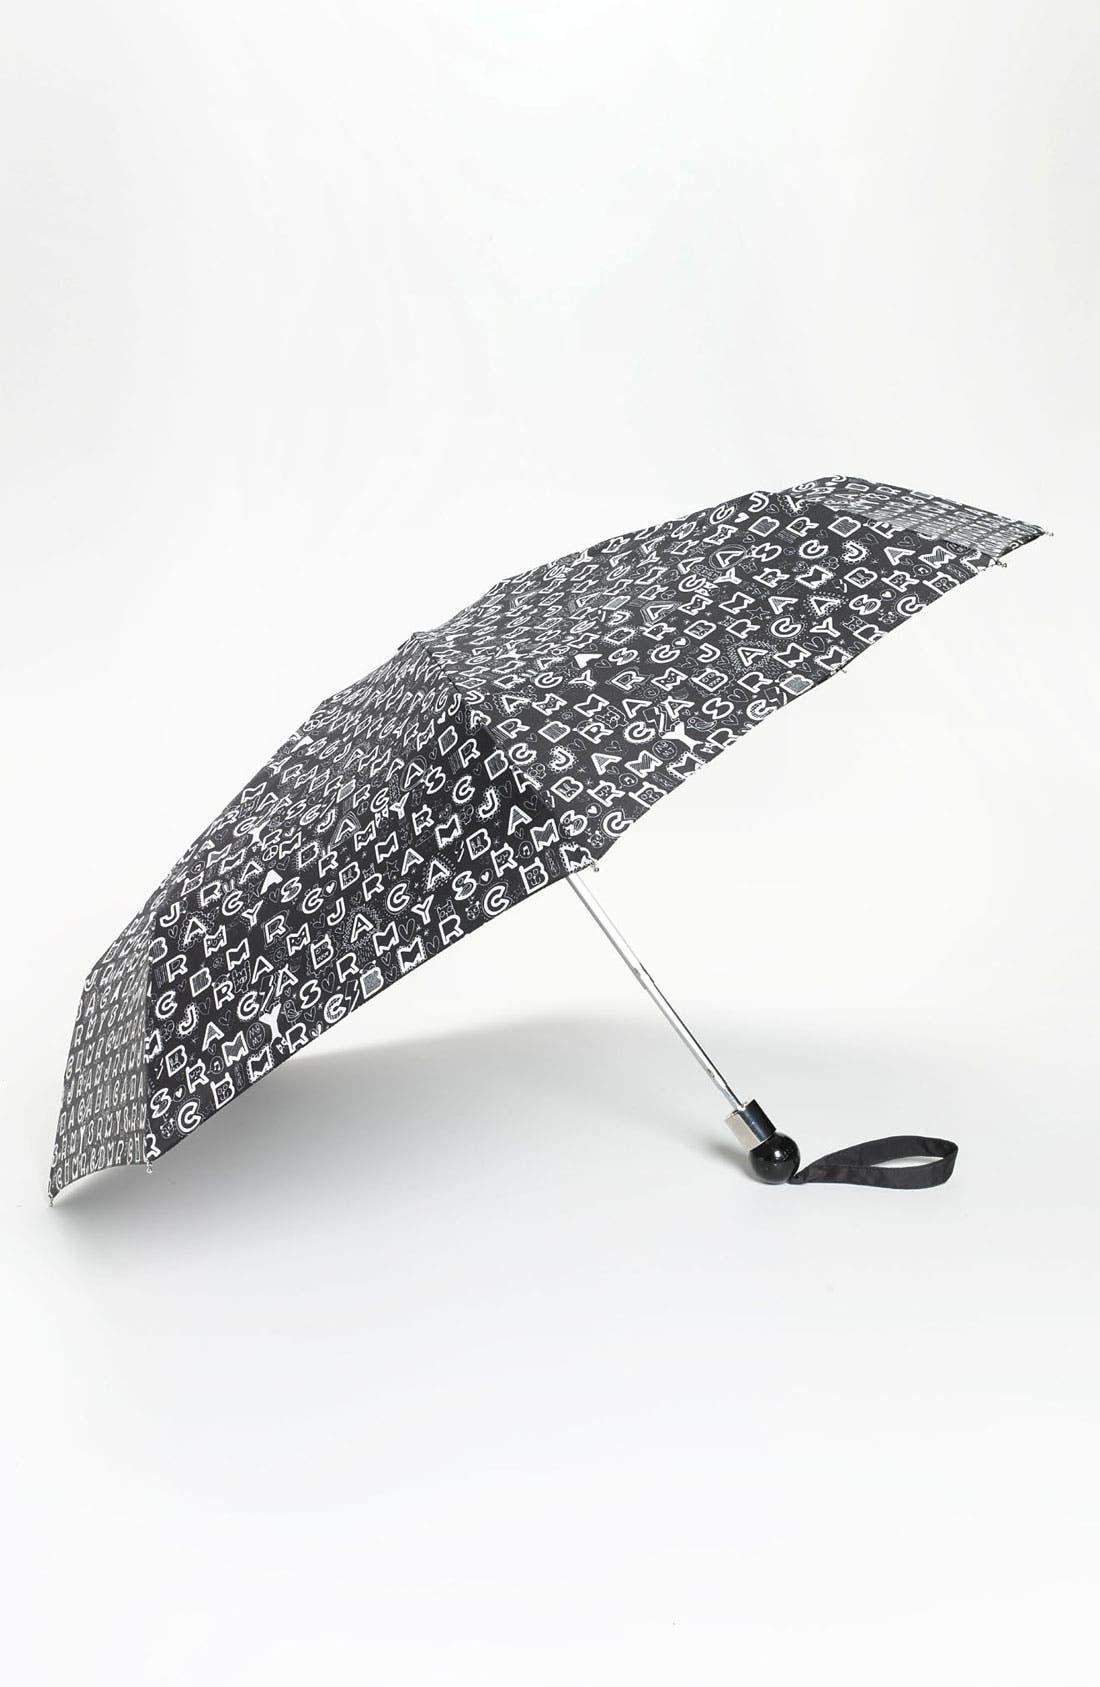 Main Image - MARC BY MARC JACOBS 'Dreamy Graffiti' Umbrella